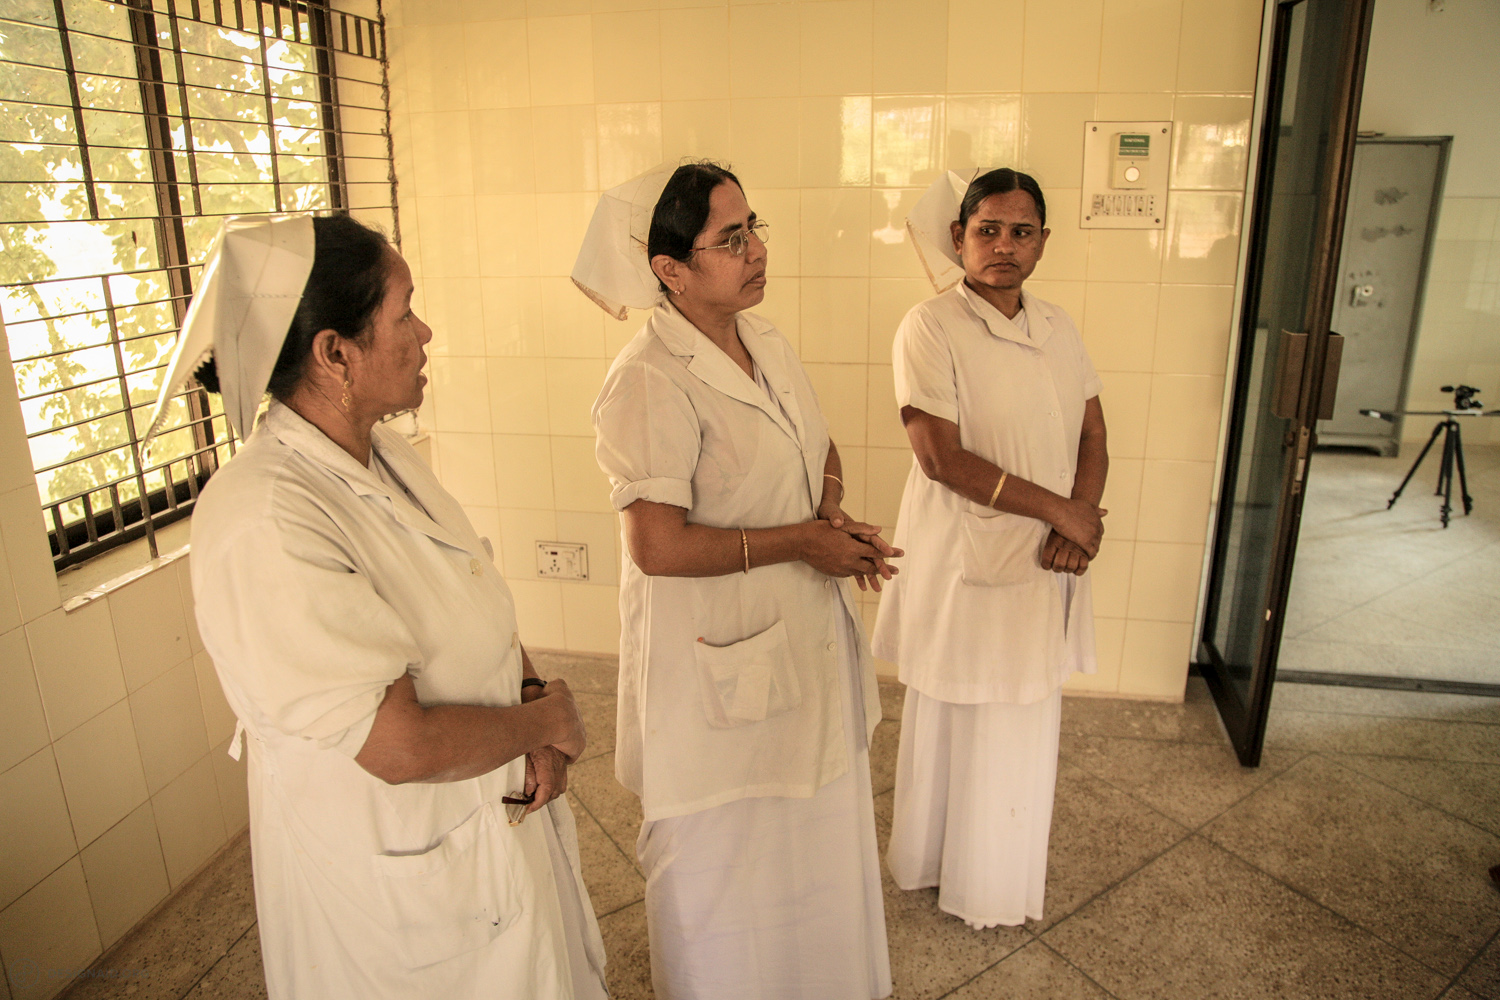 Interviewing the nurses on waste management and related issues